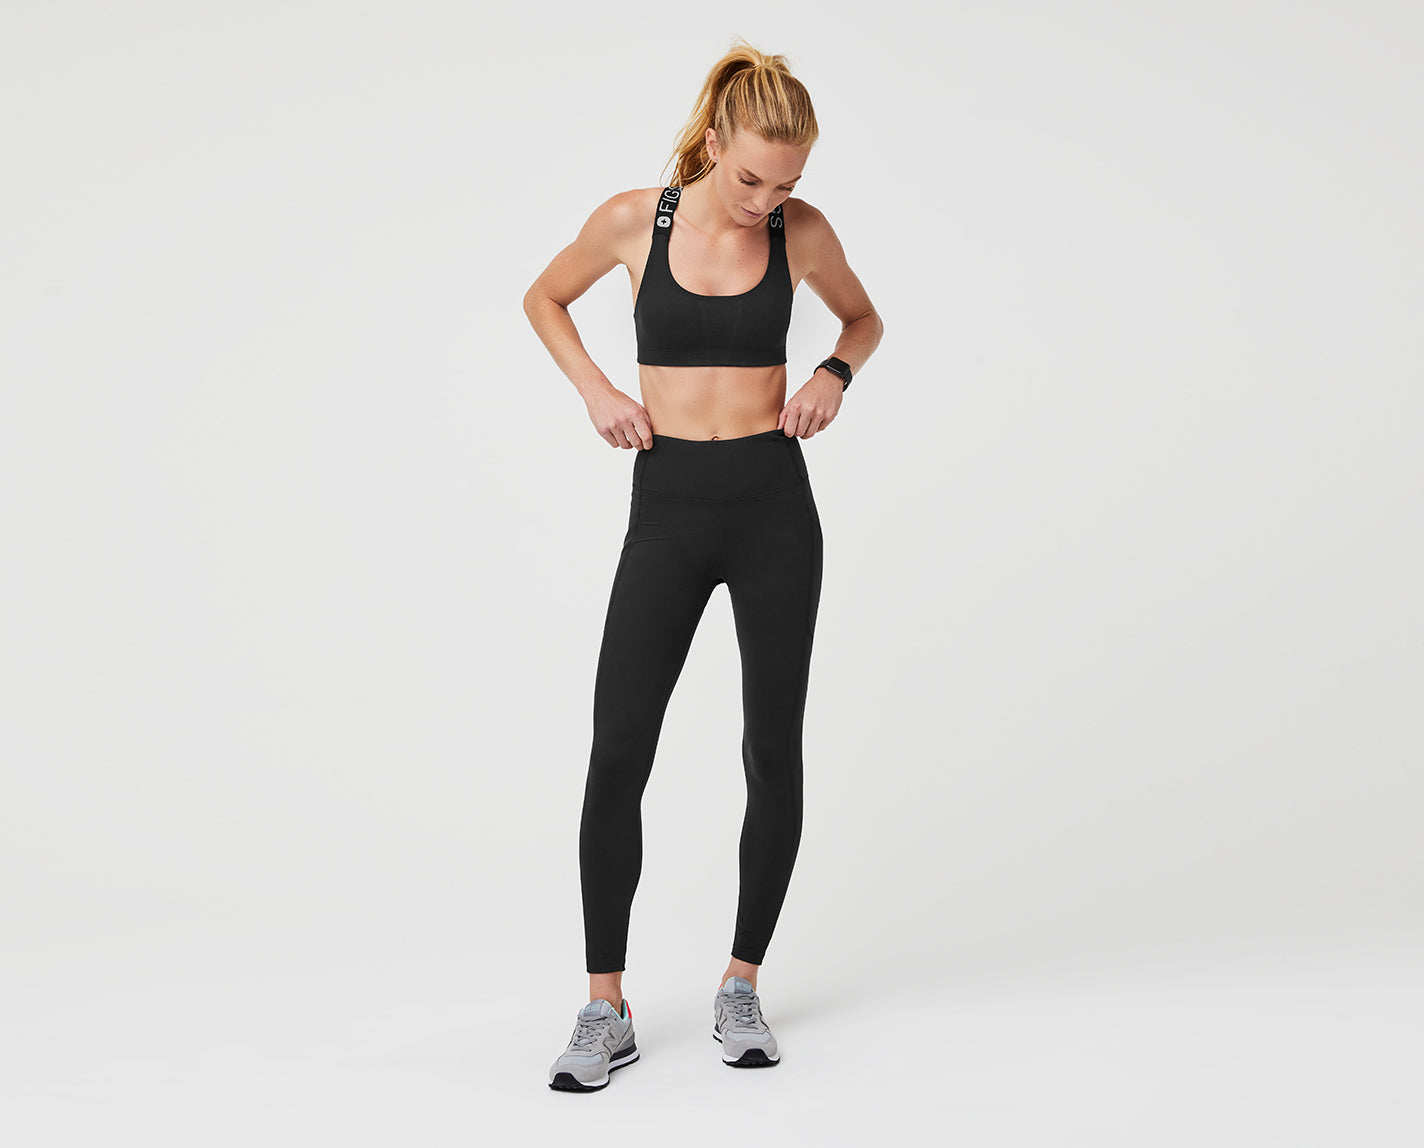 Peak performance to get you from yoga to running errands to a full shift. The 300 Performance Leggings are designed with a high waist, three pockets and features our proprietary FIONdry fabric with moisture wicking technology.